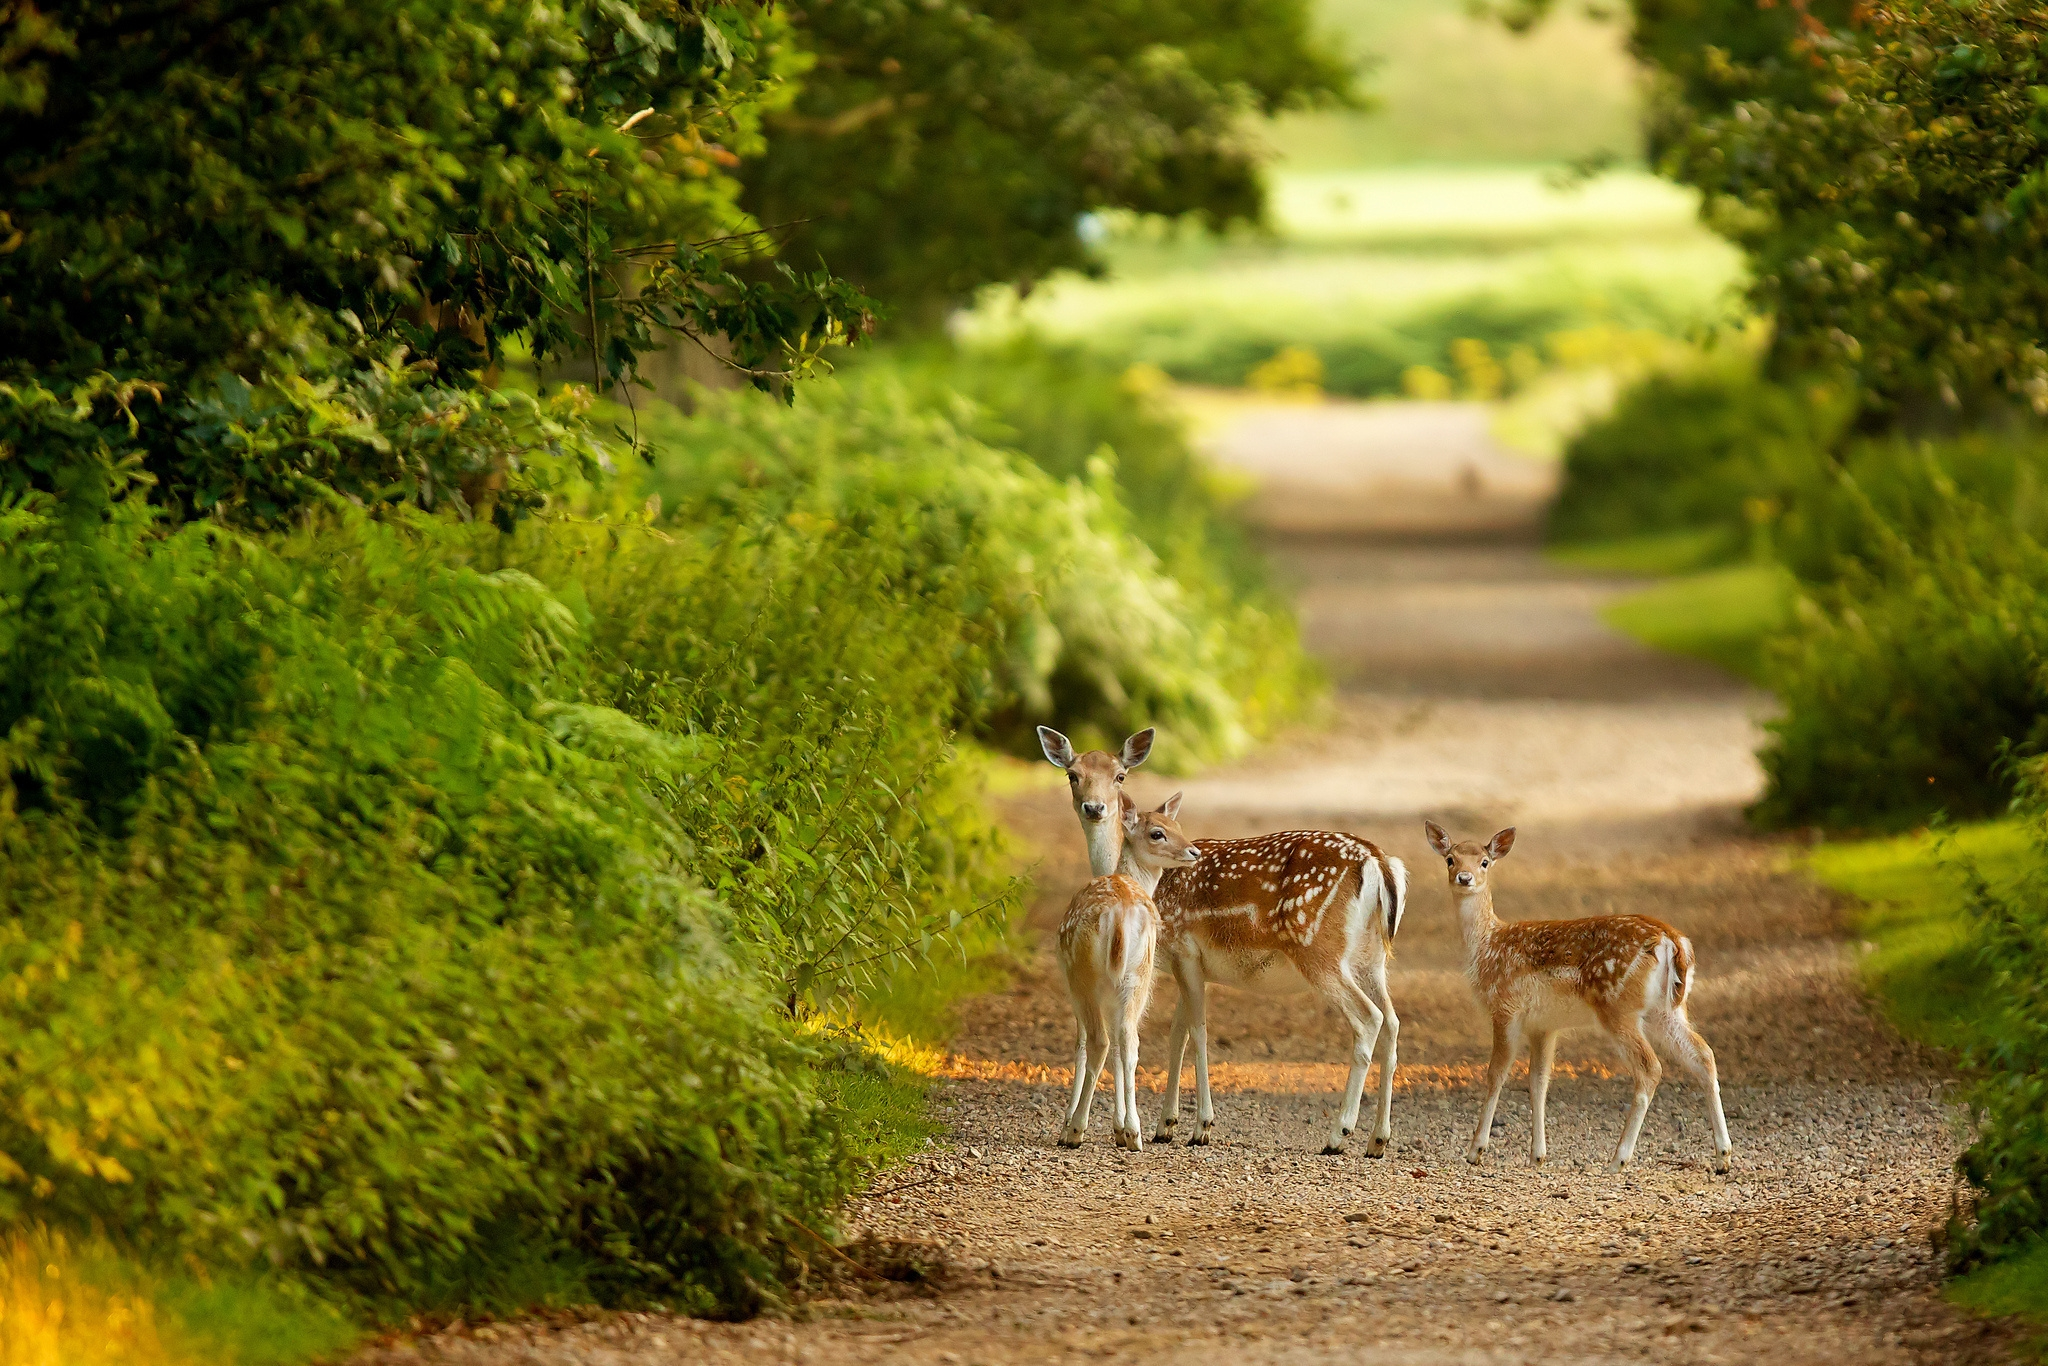 130563 download wallpaper Animals, Deers, Trail, Path, Stroll, Trees screensavers and pictures for free